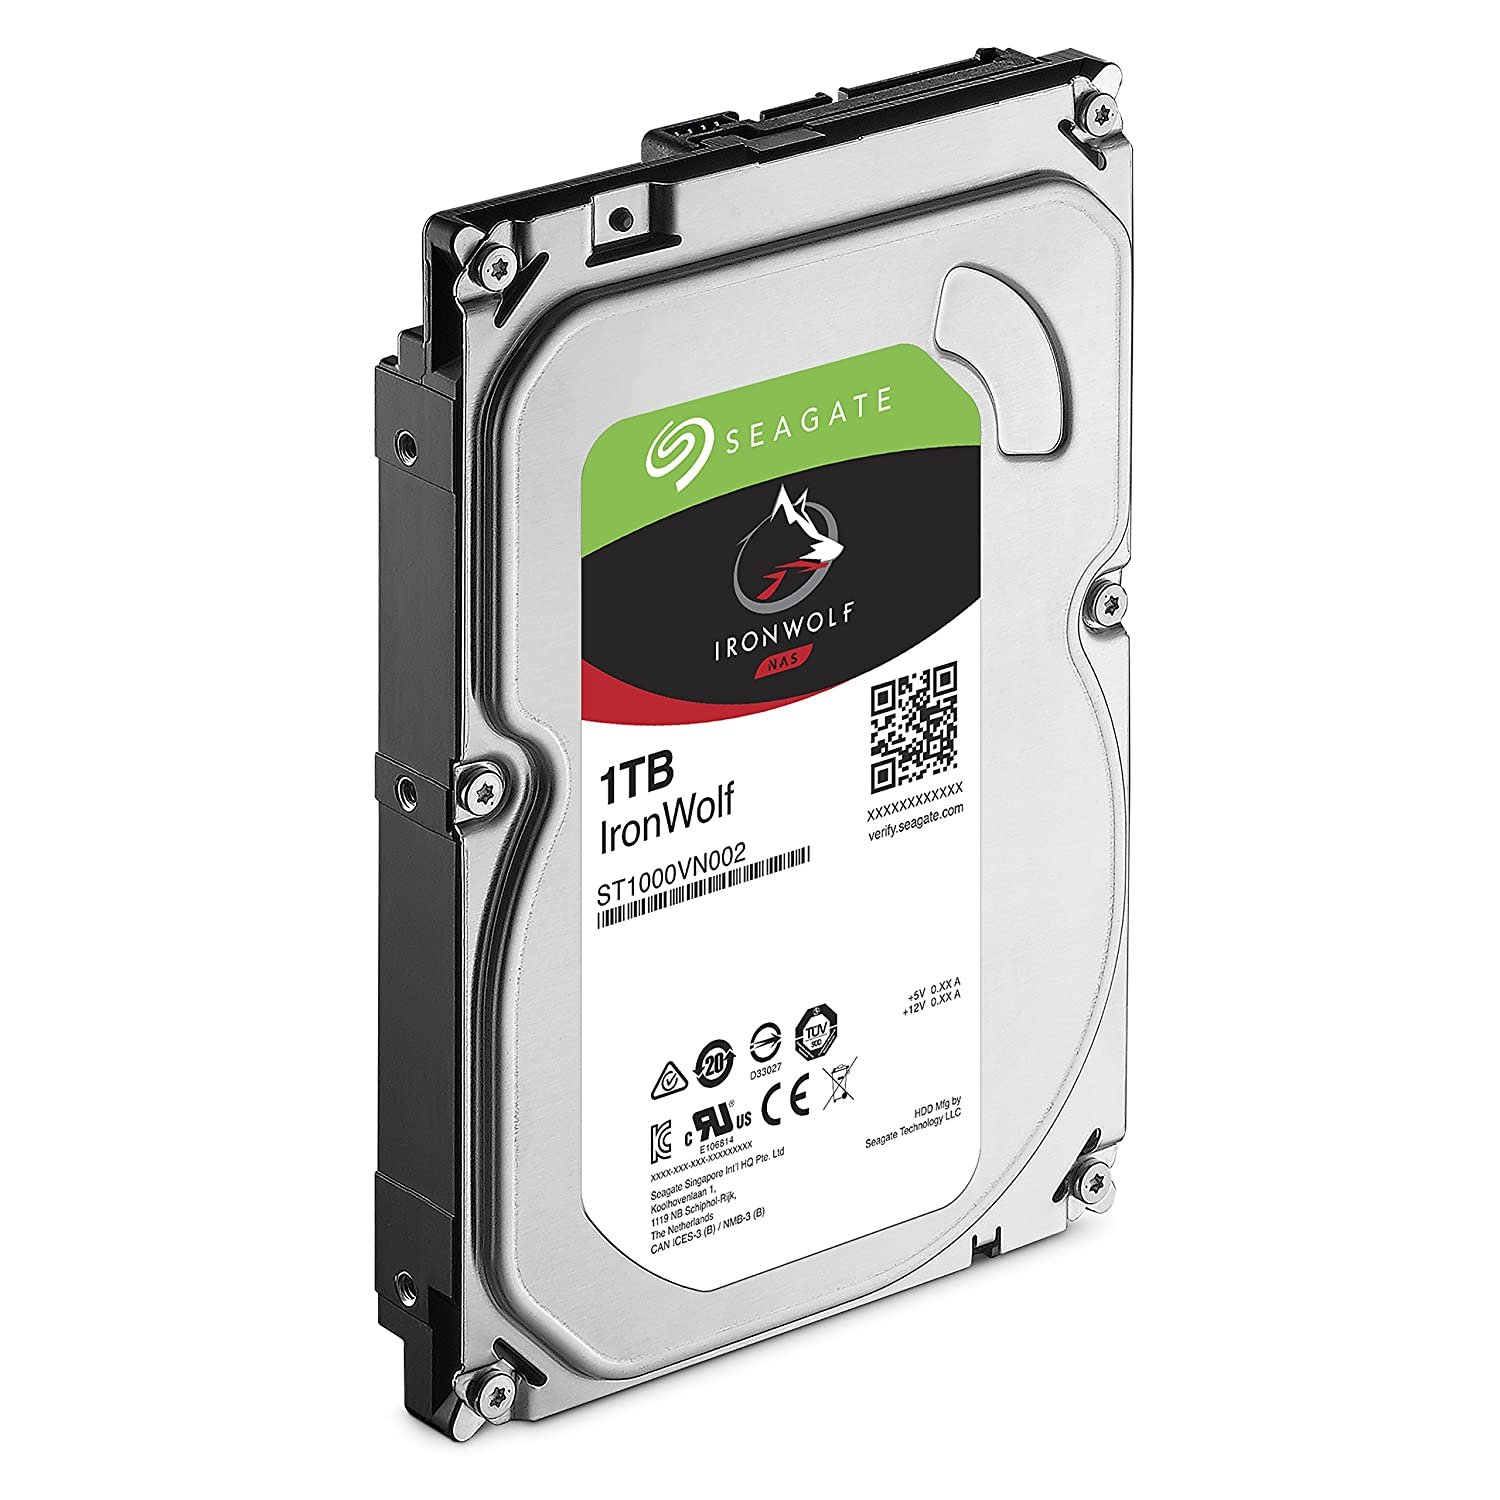 7200 RPM, 256 MB Cache, 300 TB//year Workload Rating, Up to 214 MB//s, Model: ST6000NEZ023//NE0023 Seagate 6 TB IronWolf Pro 3.5 Inch Internal Hard Drive for 1-24 Bay NAS Systems